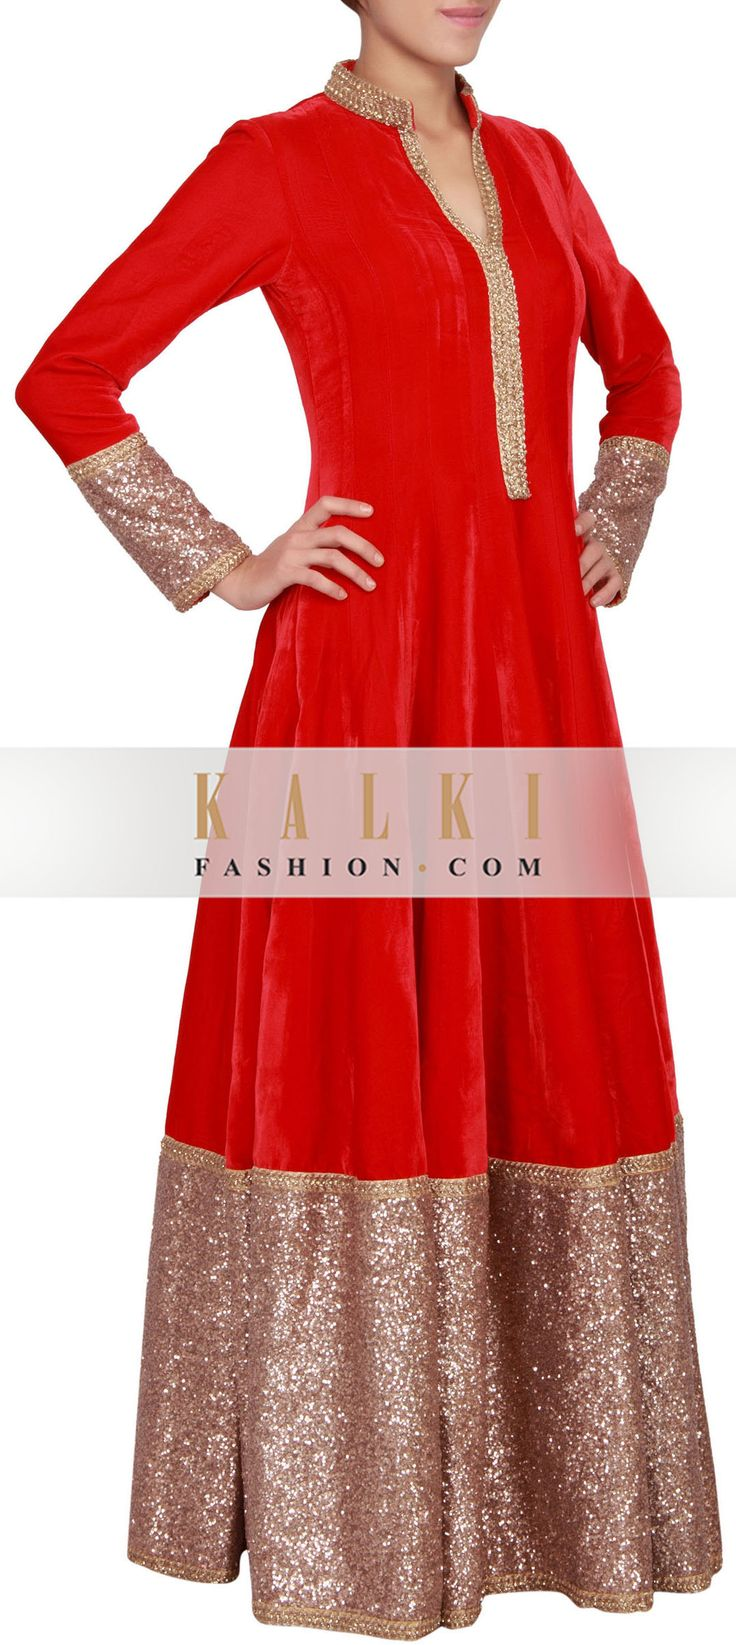 Buy Online from the link below. We ship worldwide (Free Shipping over US$100) http://www.kalkifashion.com/scarlet-red-velvet-anarkali-suit-embellished-in-zardosi-and-sequin-only-on-kalki.html